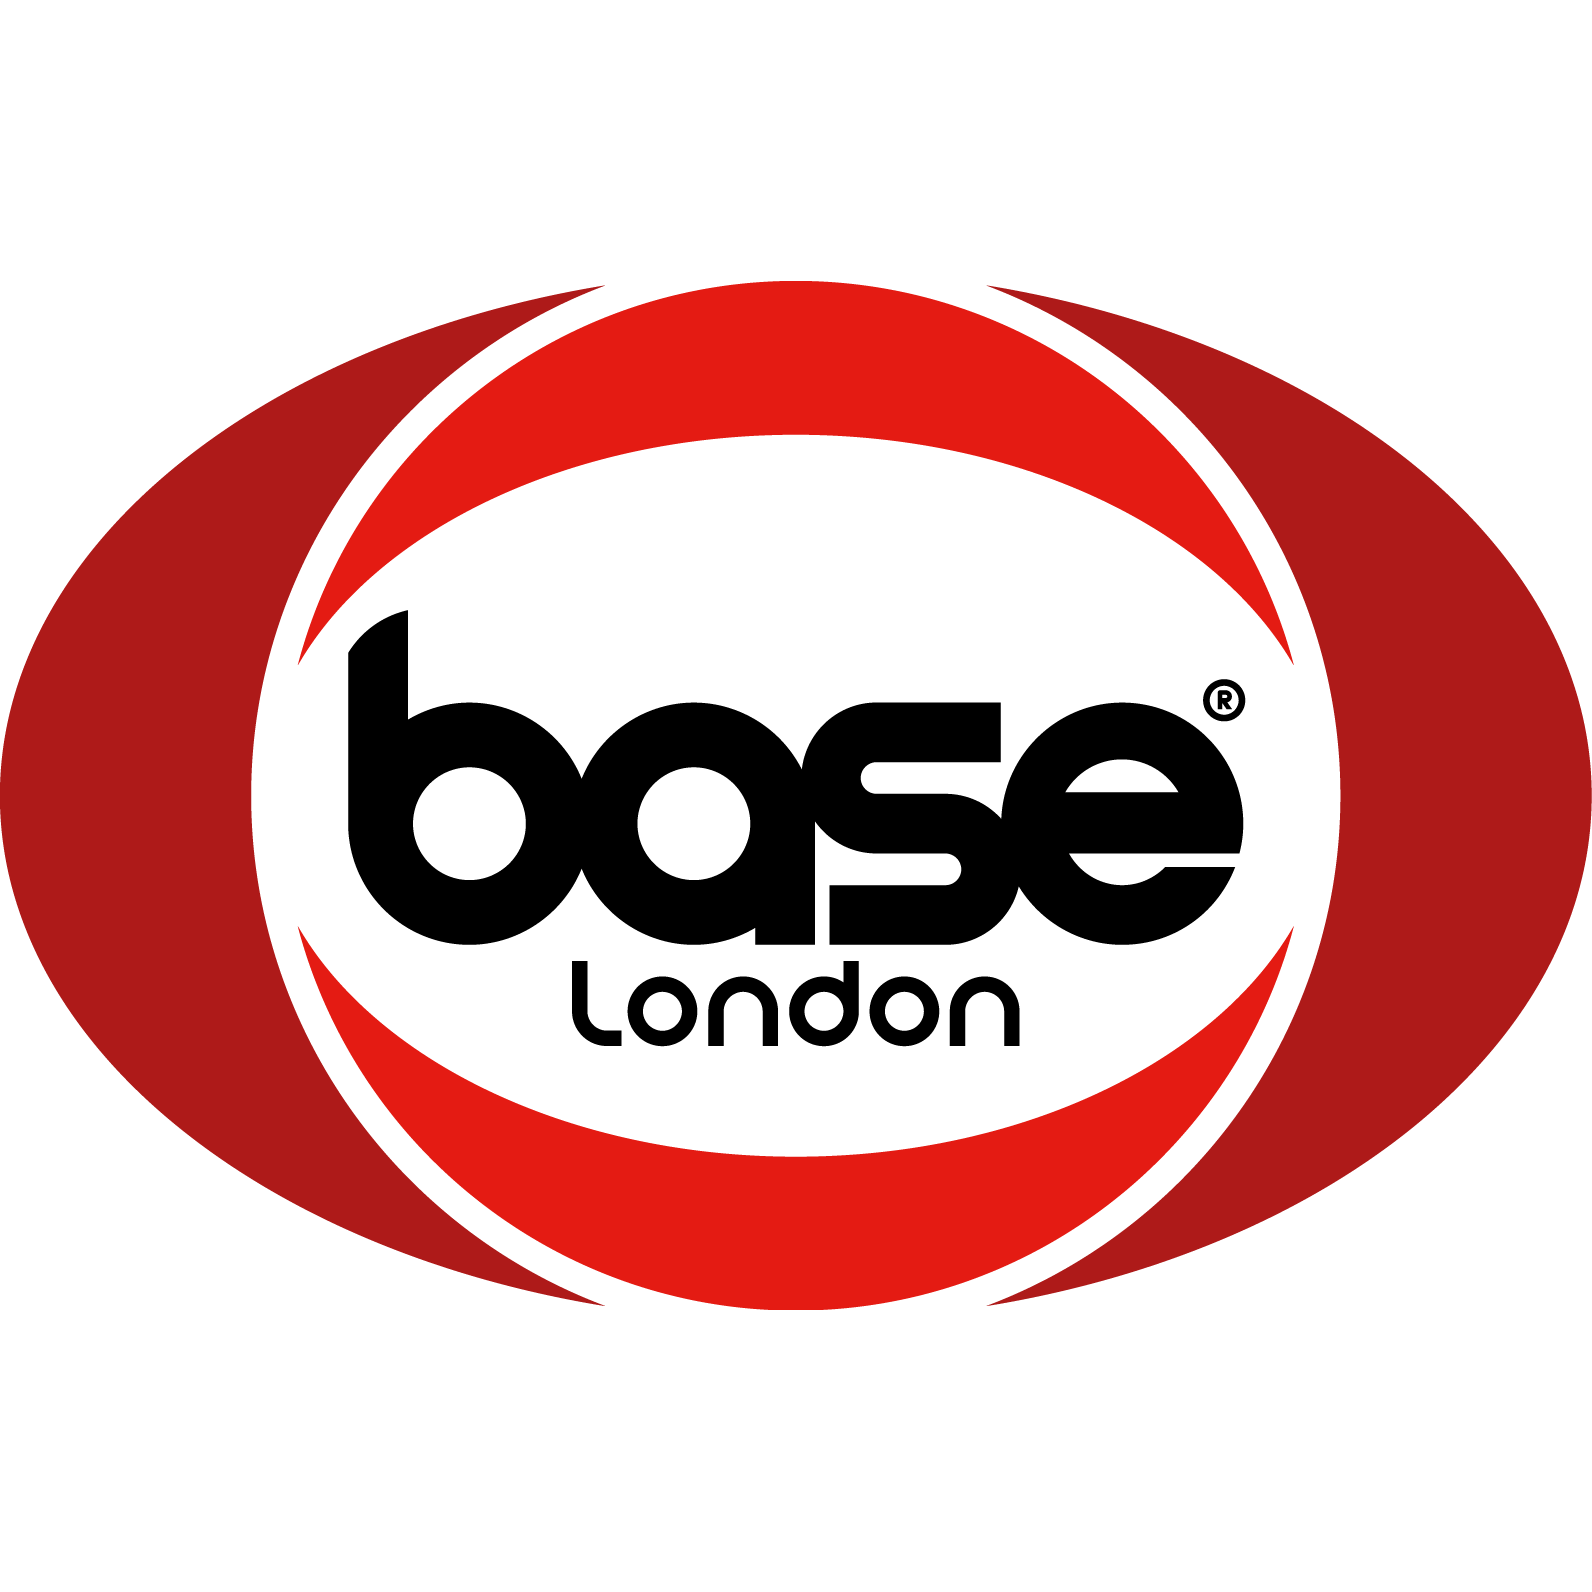 Base-Oval-Colour-square.png